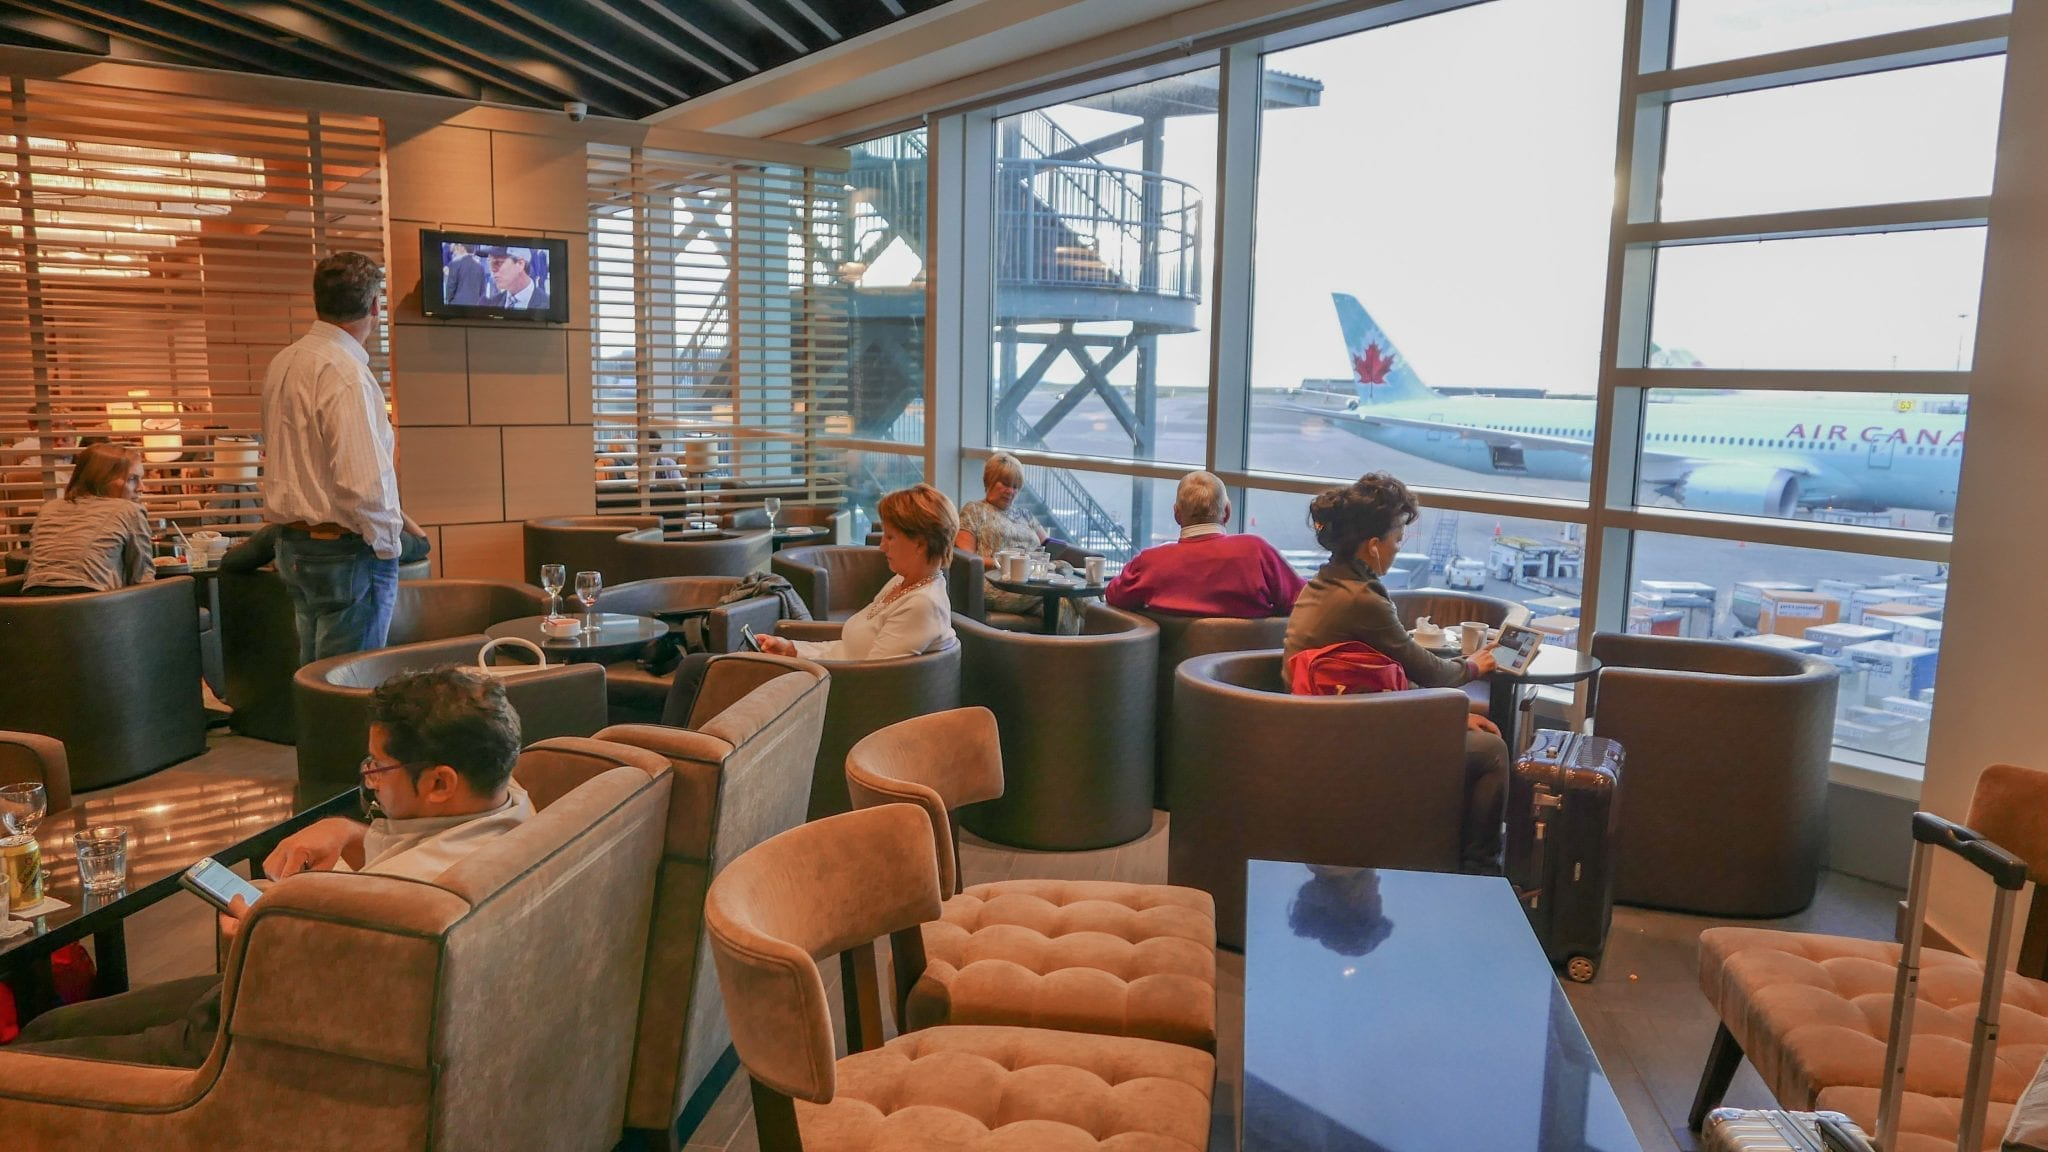 YVR lounges 18 - REVIEW - Air Canada : Business Class - Vancouver to London LHR (B789)